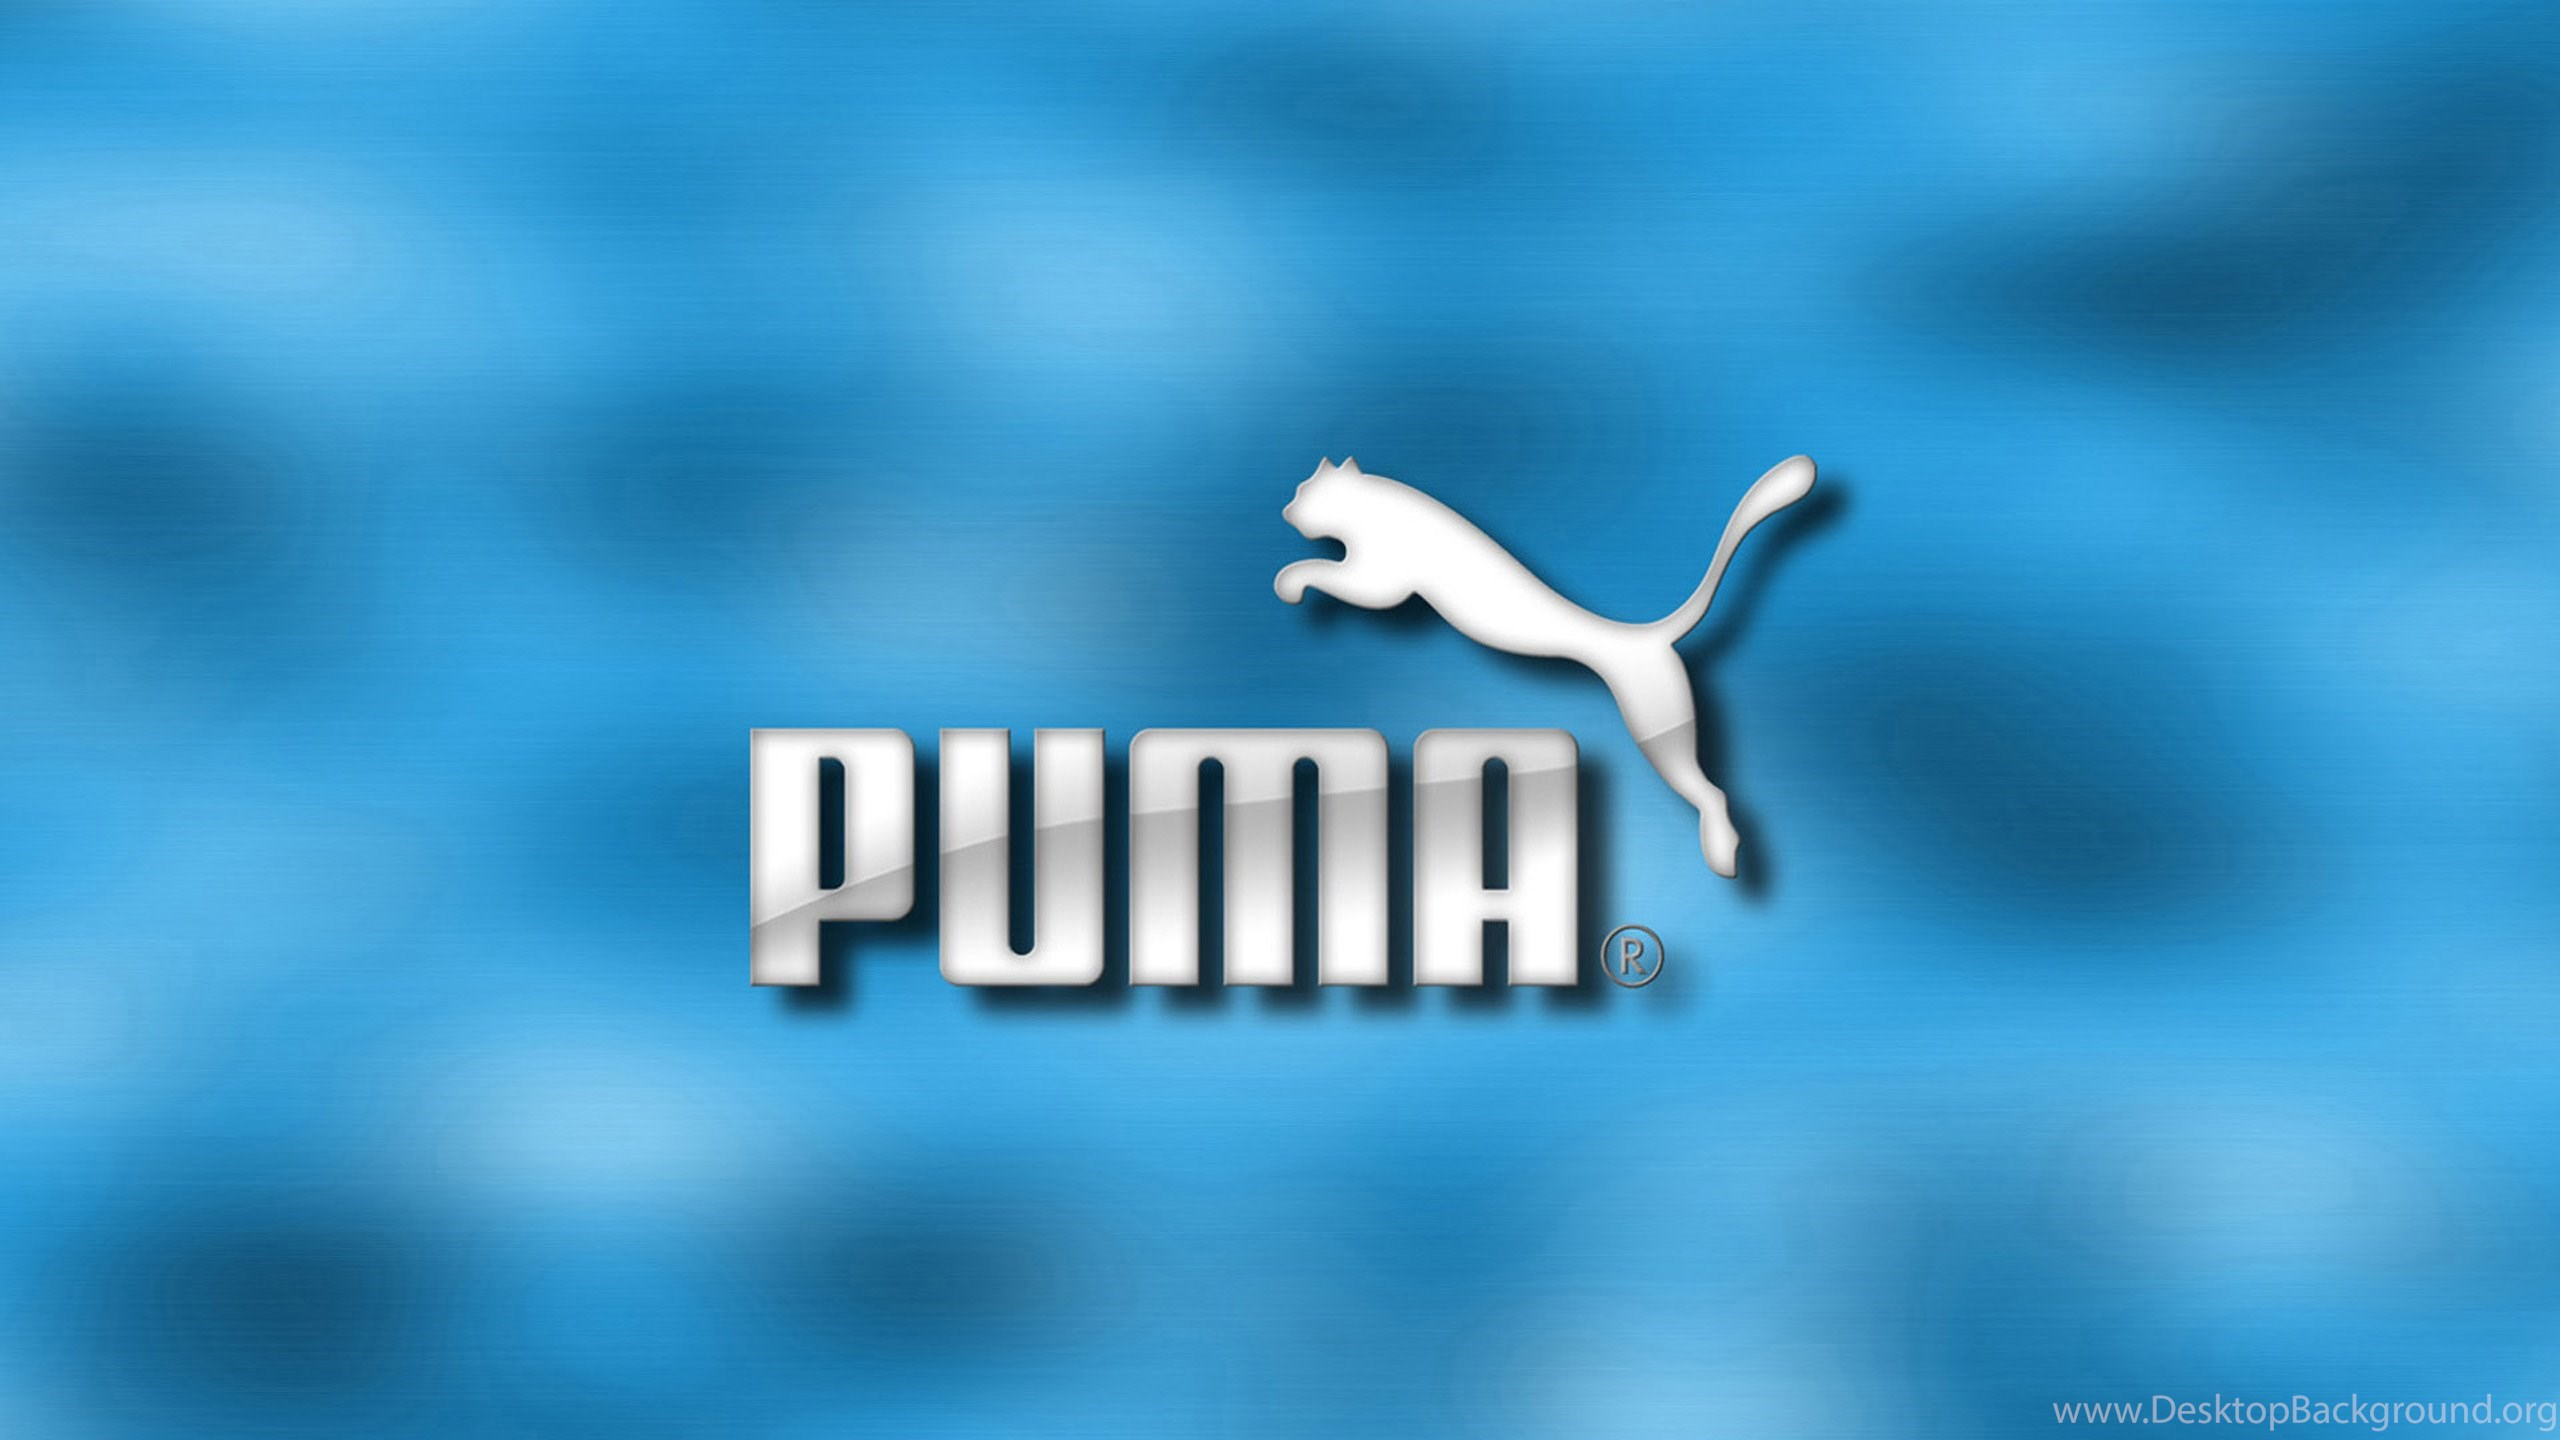 famous logo puma wallpapers, hd wallpapers downloads desktop background